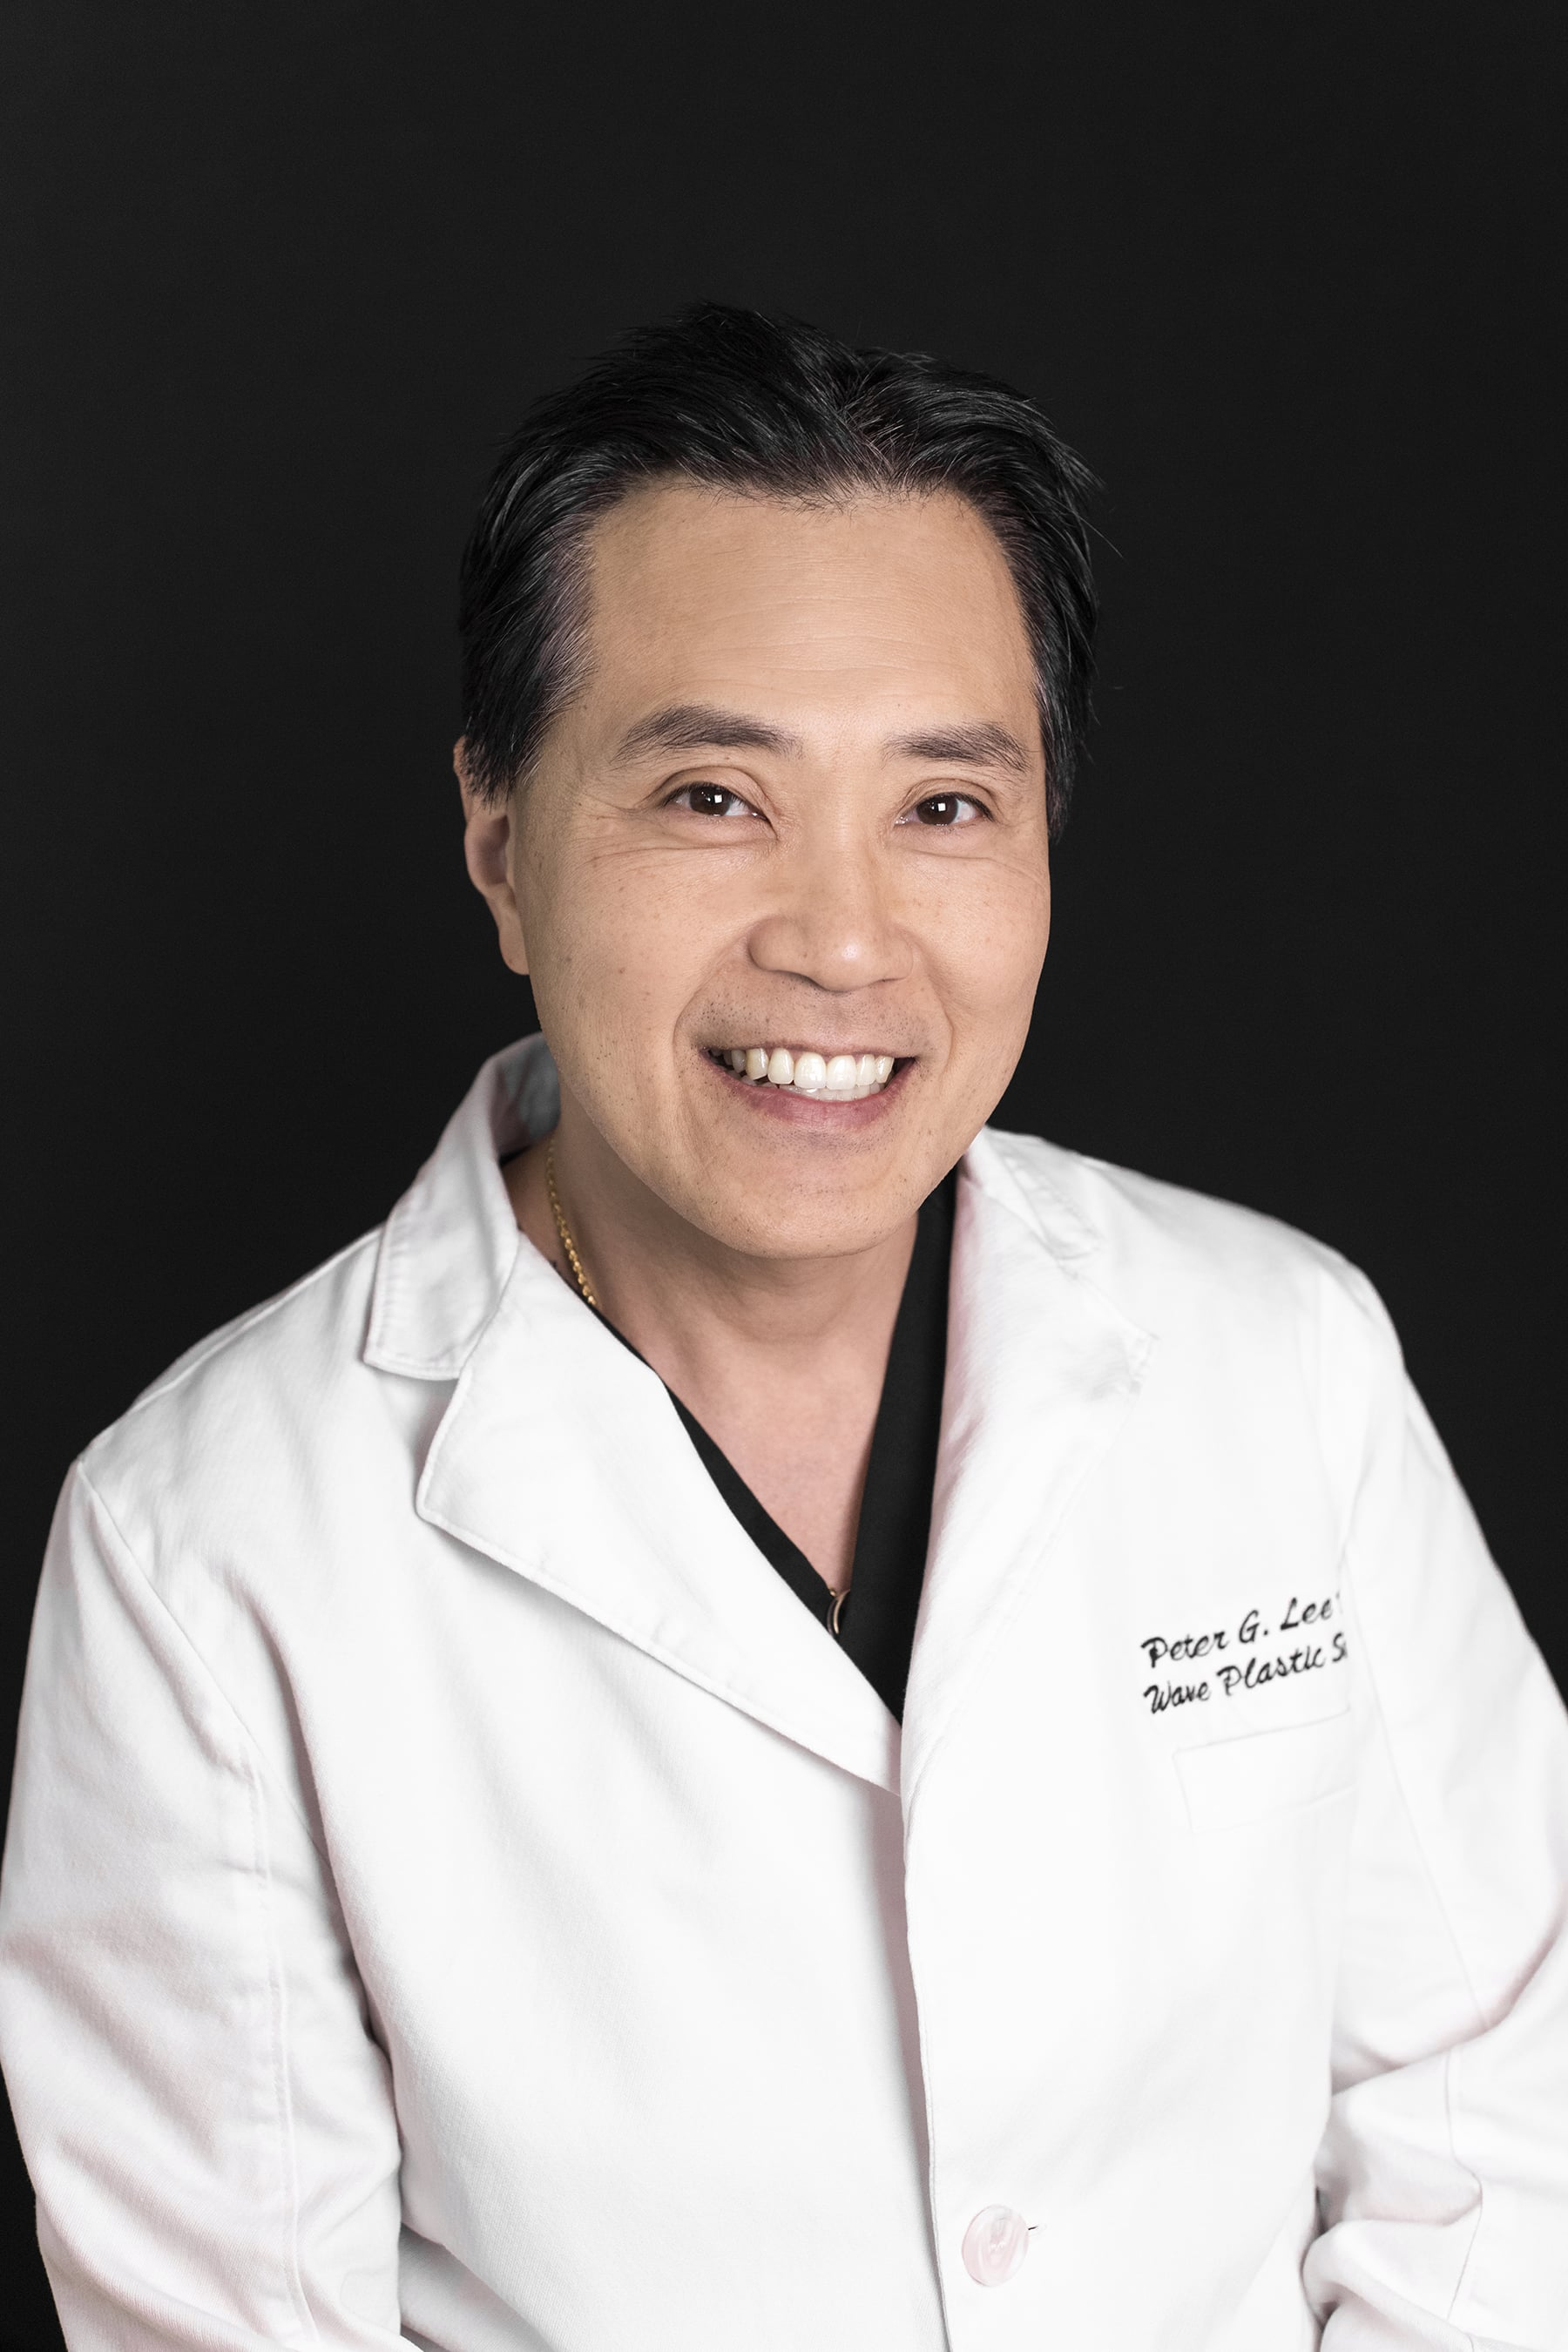 Dr. Peter Lee - Wave Plastic Surgery & Aesthetic Laser Center